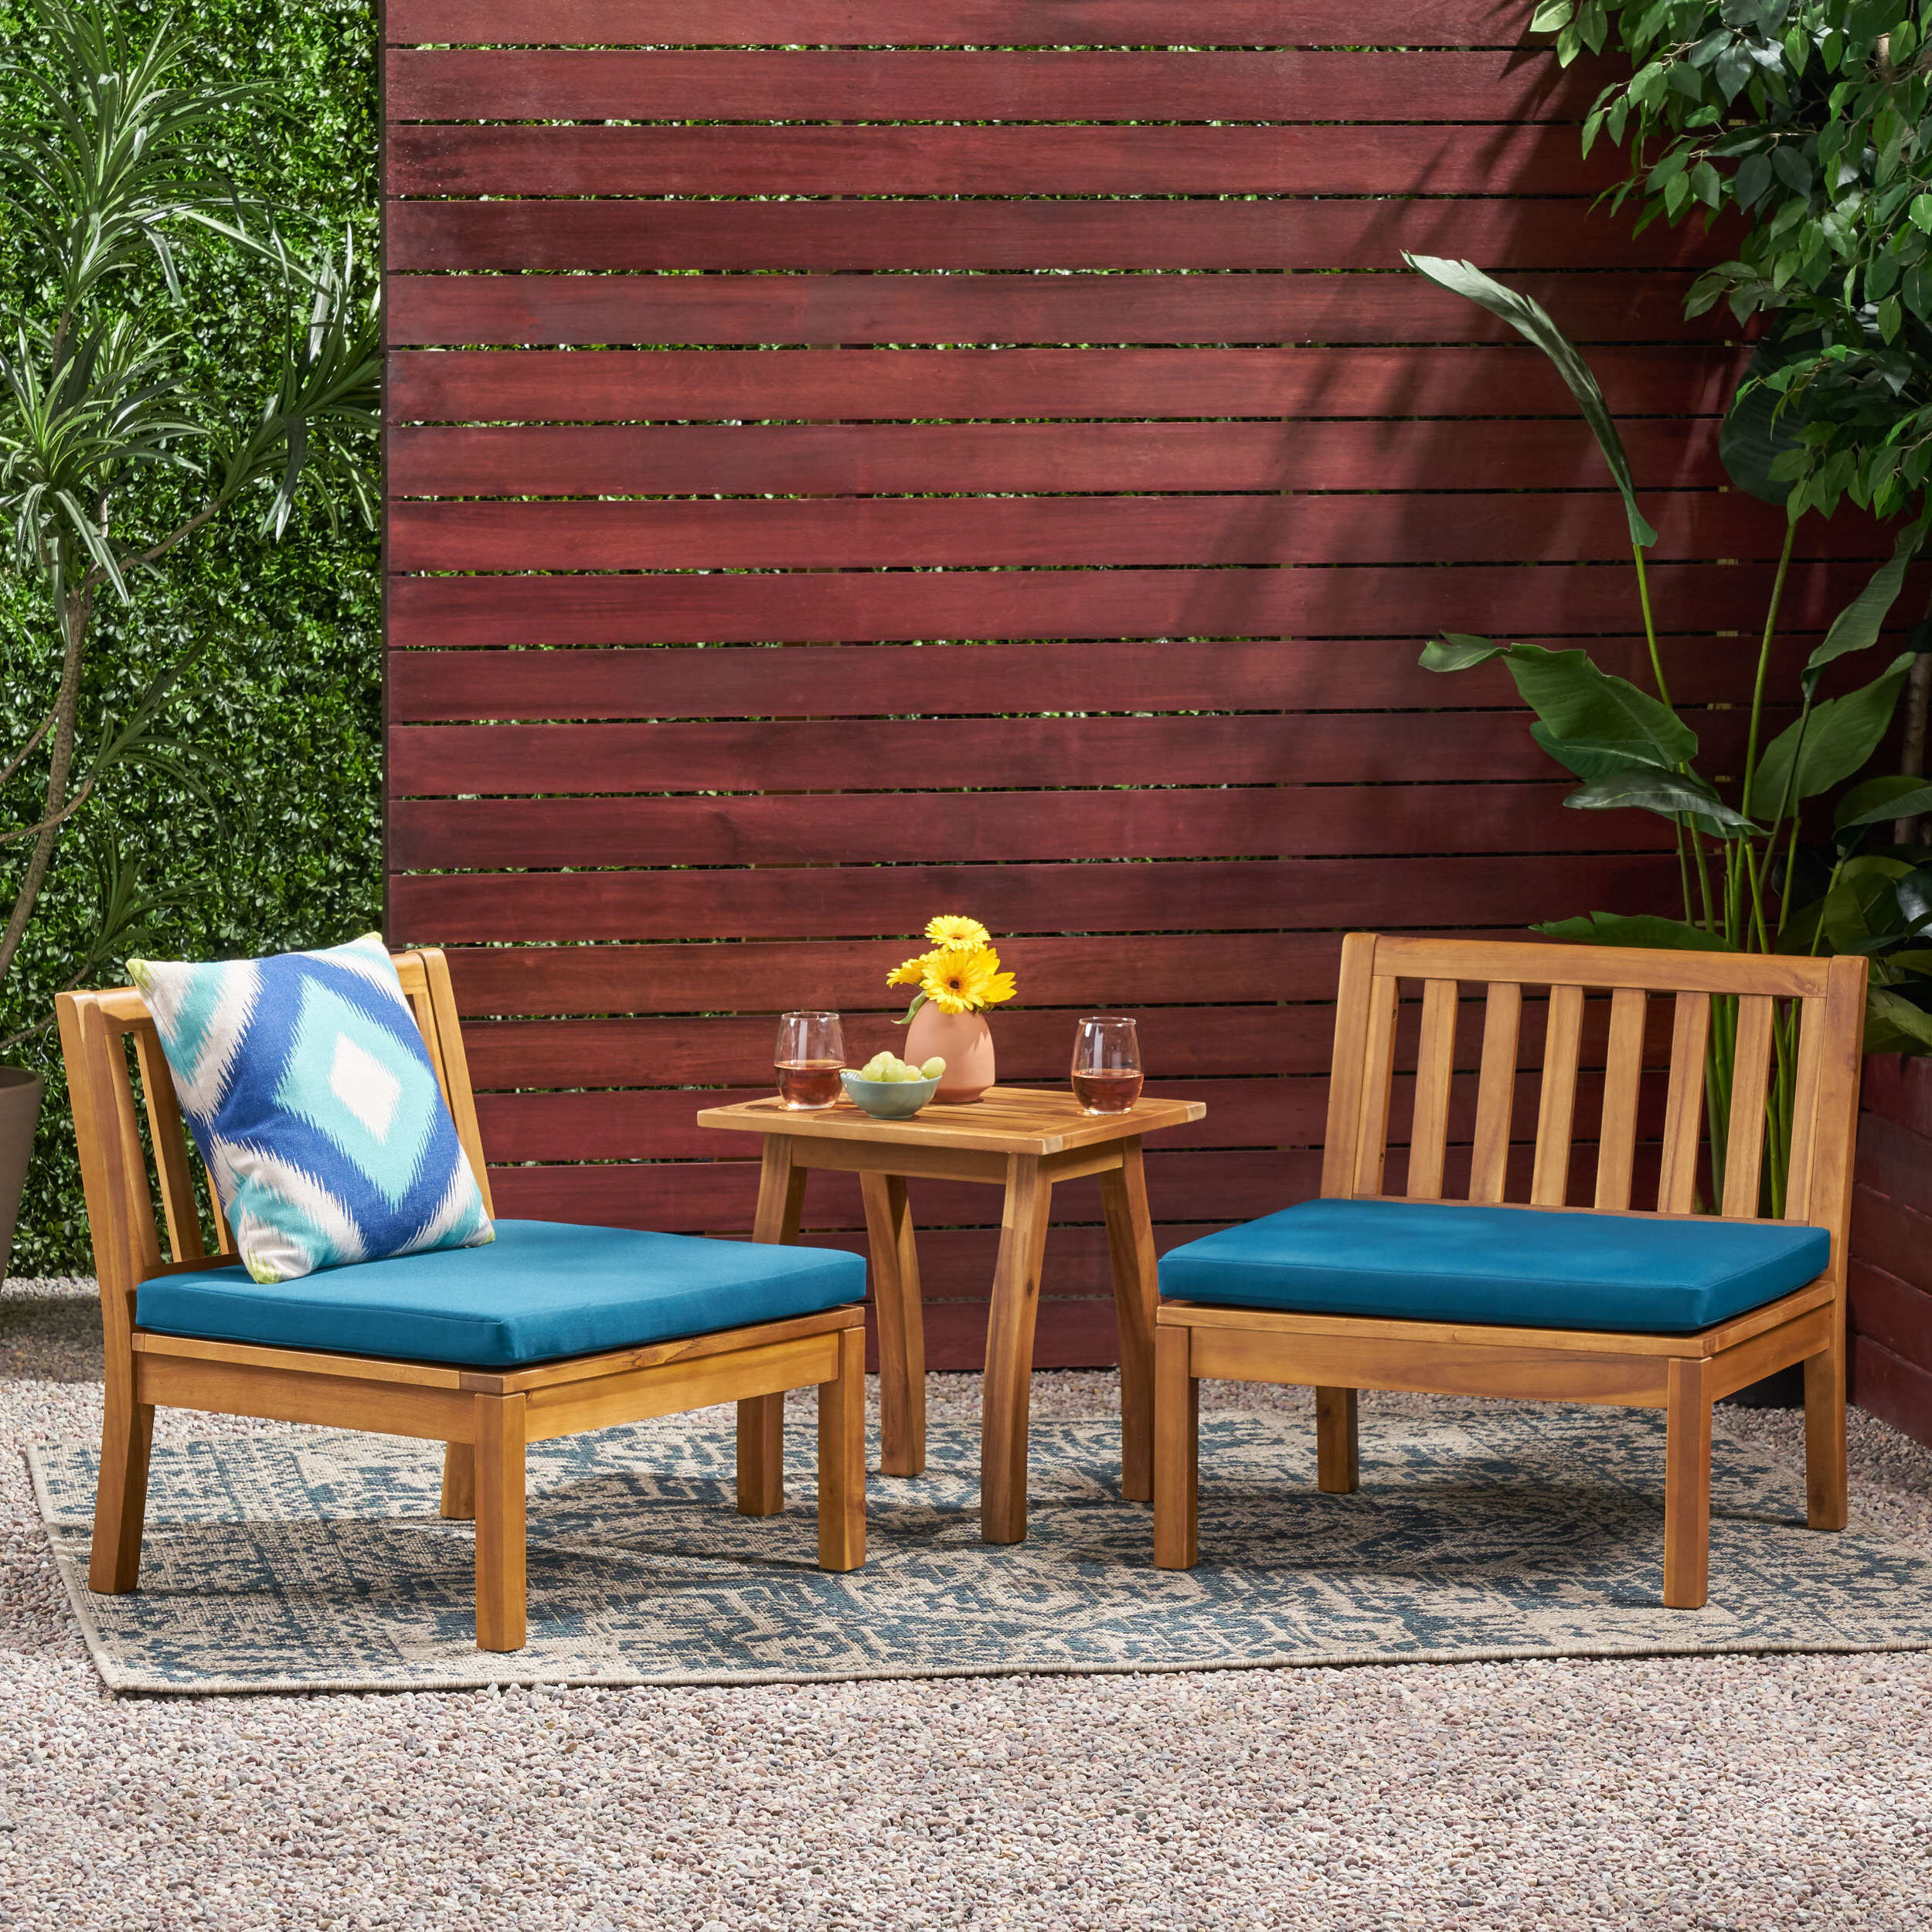 Hiltz Armchairs Within Popular Hiltz Outdoor Chat 3 Piece Seating Group With Cushions (View 9 of 20)